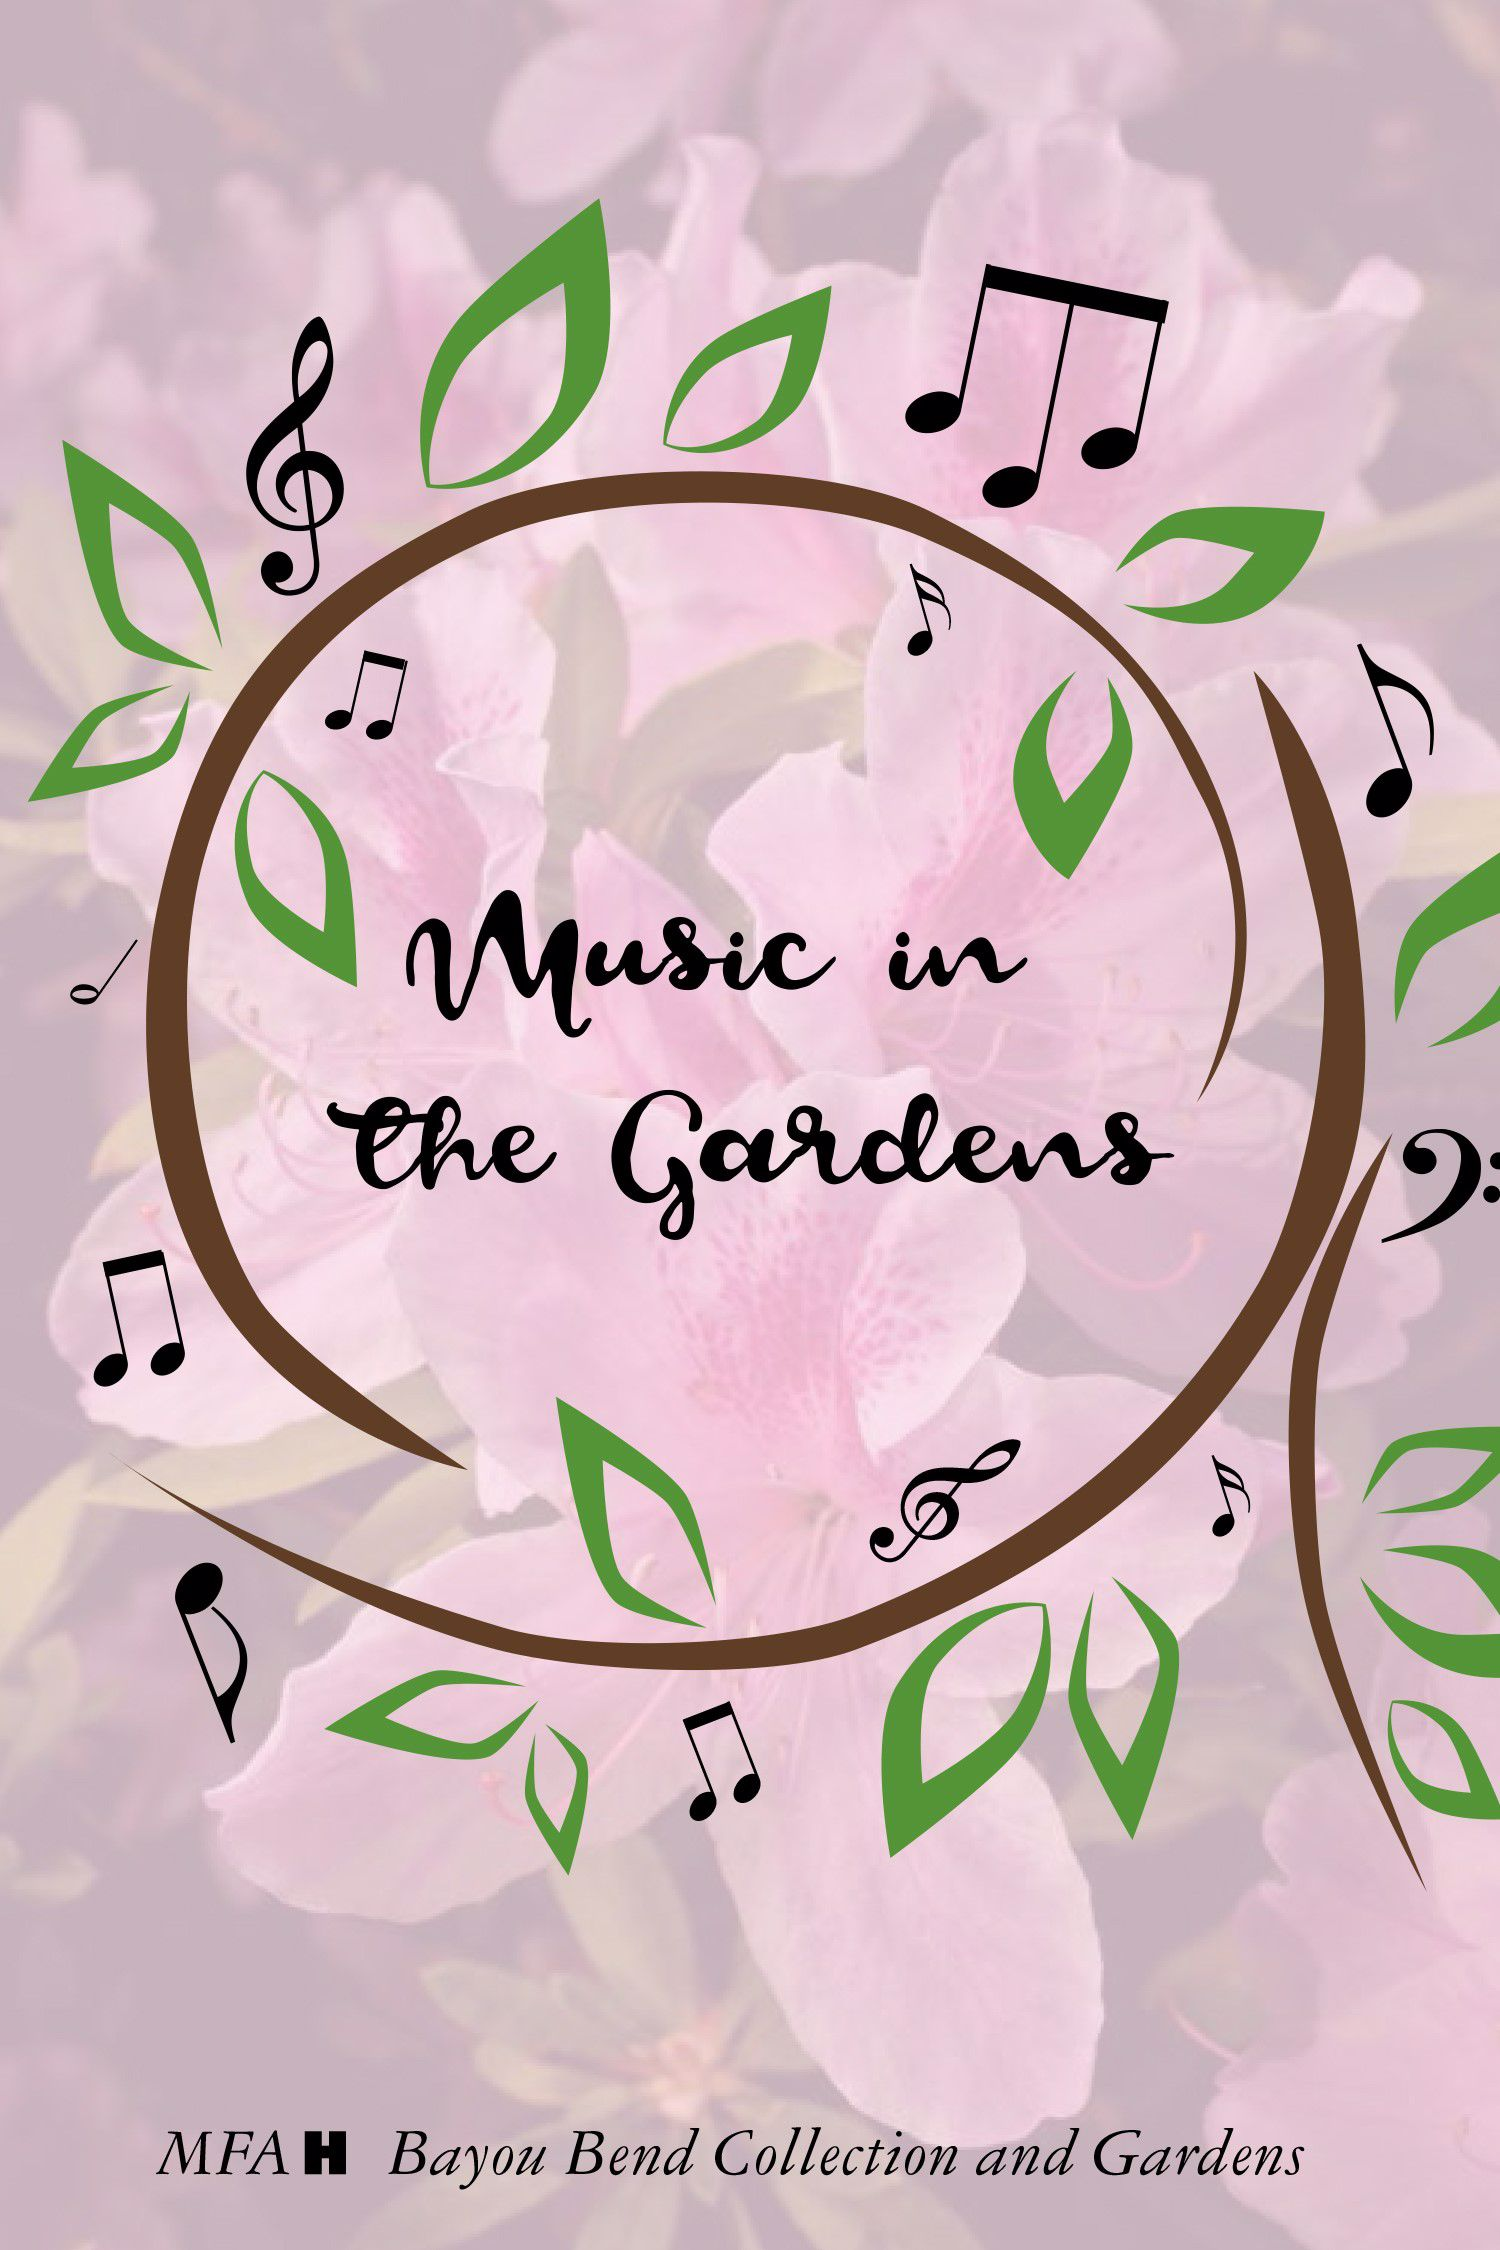 music audio tour cover   bayou bend gardens.3701866874817527349 - Bayou Bend Collection And Gardens Cost